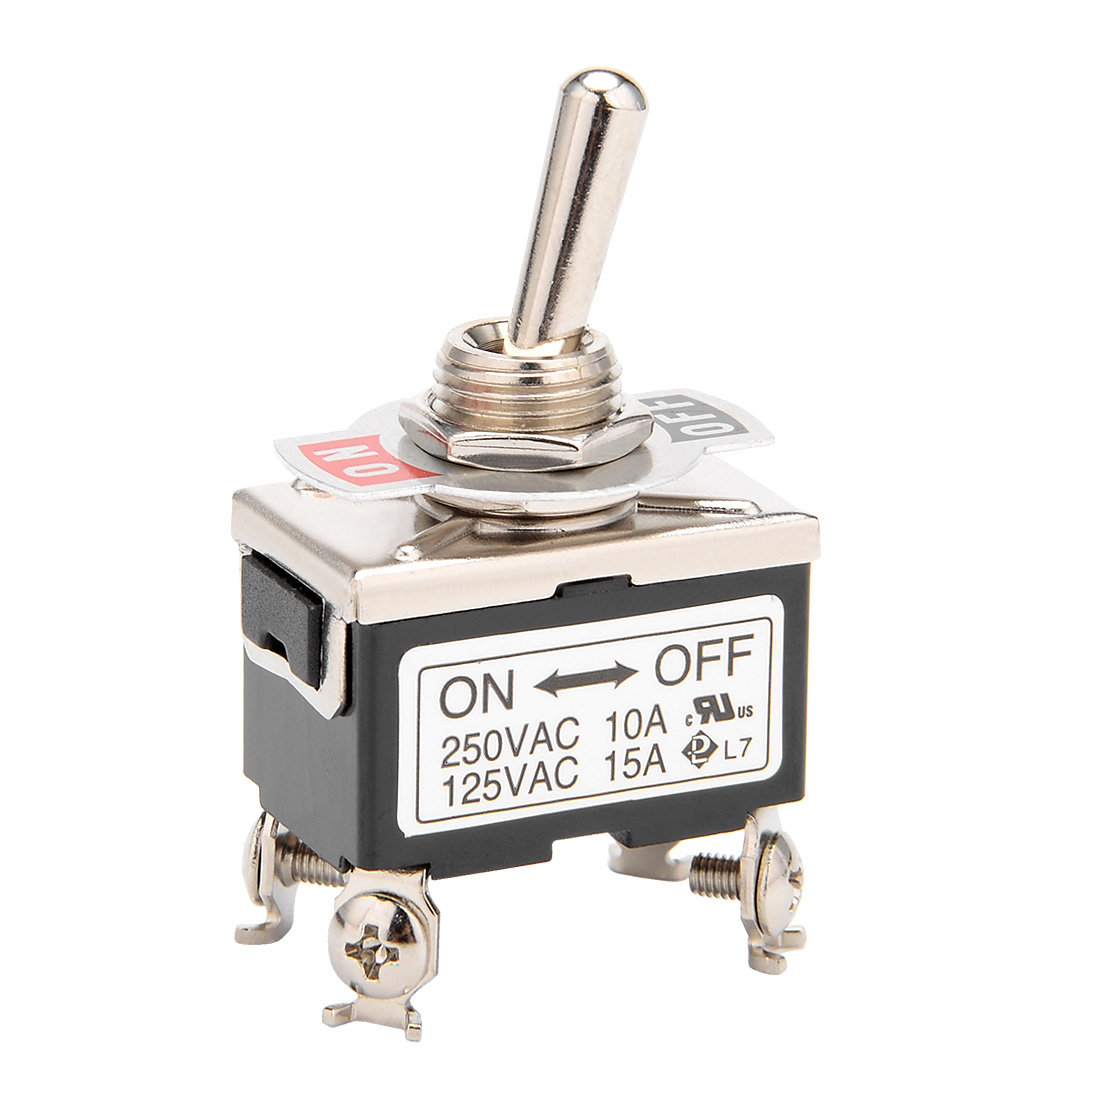 AC 125V/15A 250V/10A ON-OFF 2 Position 2 Terminals Latching DPST Toggle Switch